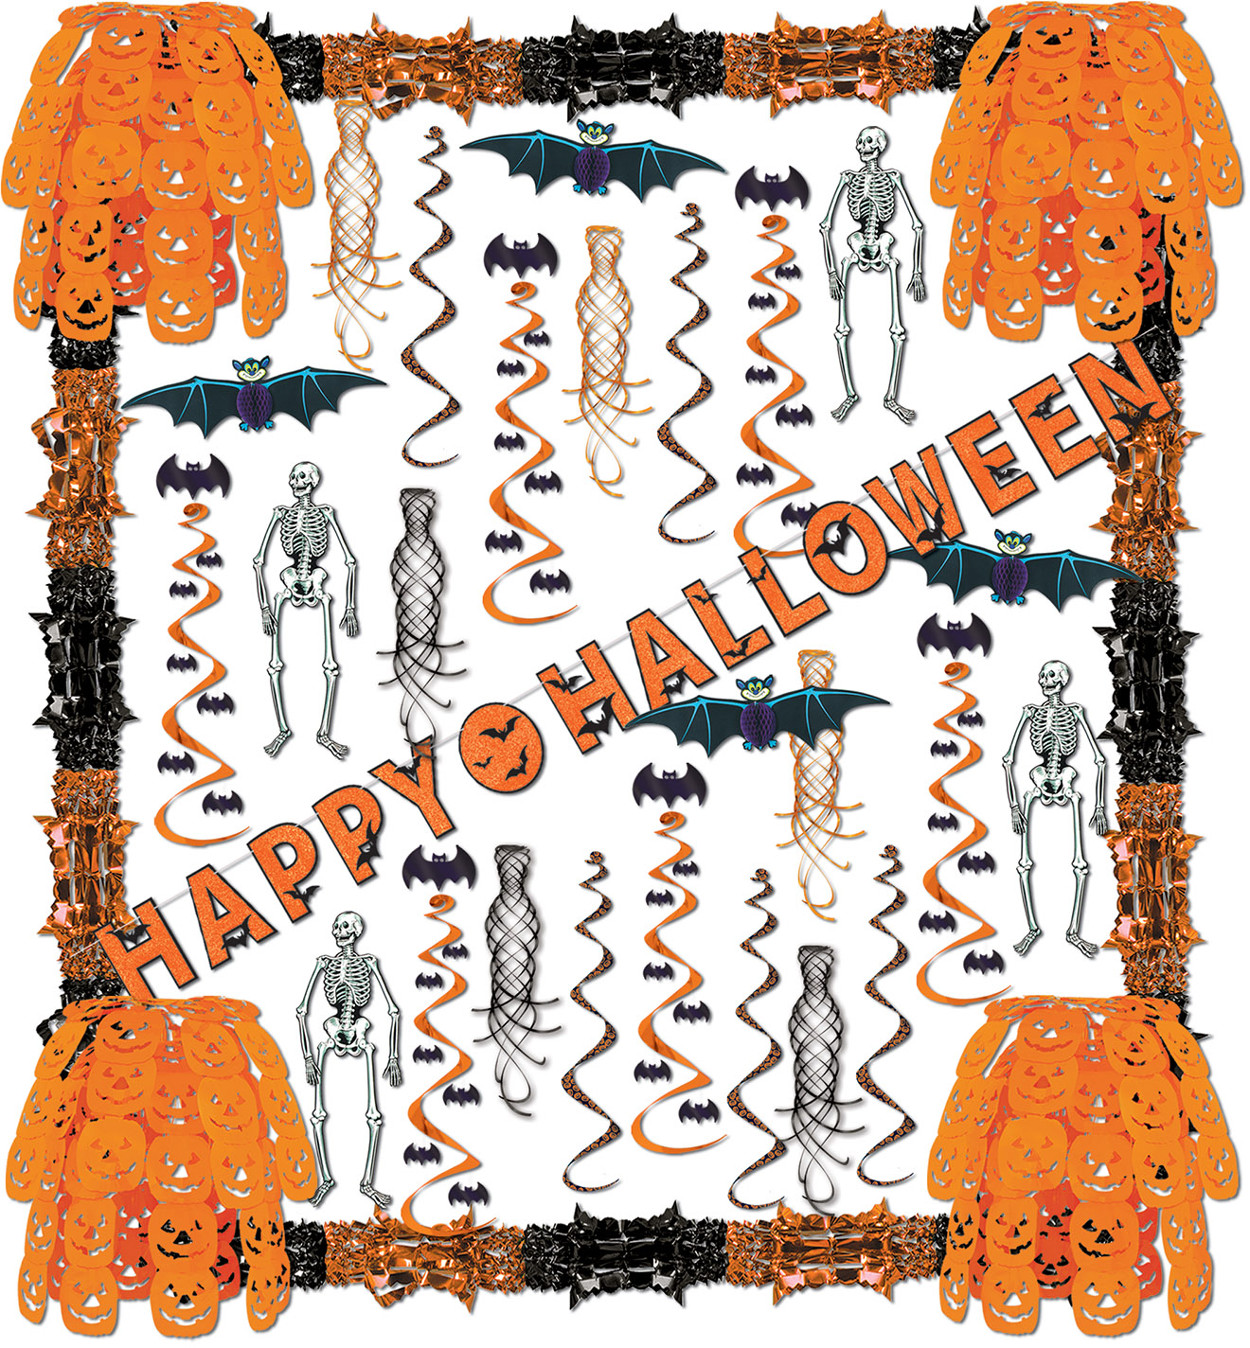 34 Piece Happy Halloween Skeletons Bats Pumpkins Streamers Decorations Kit